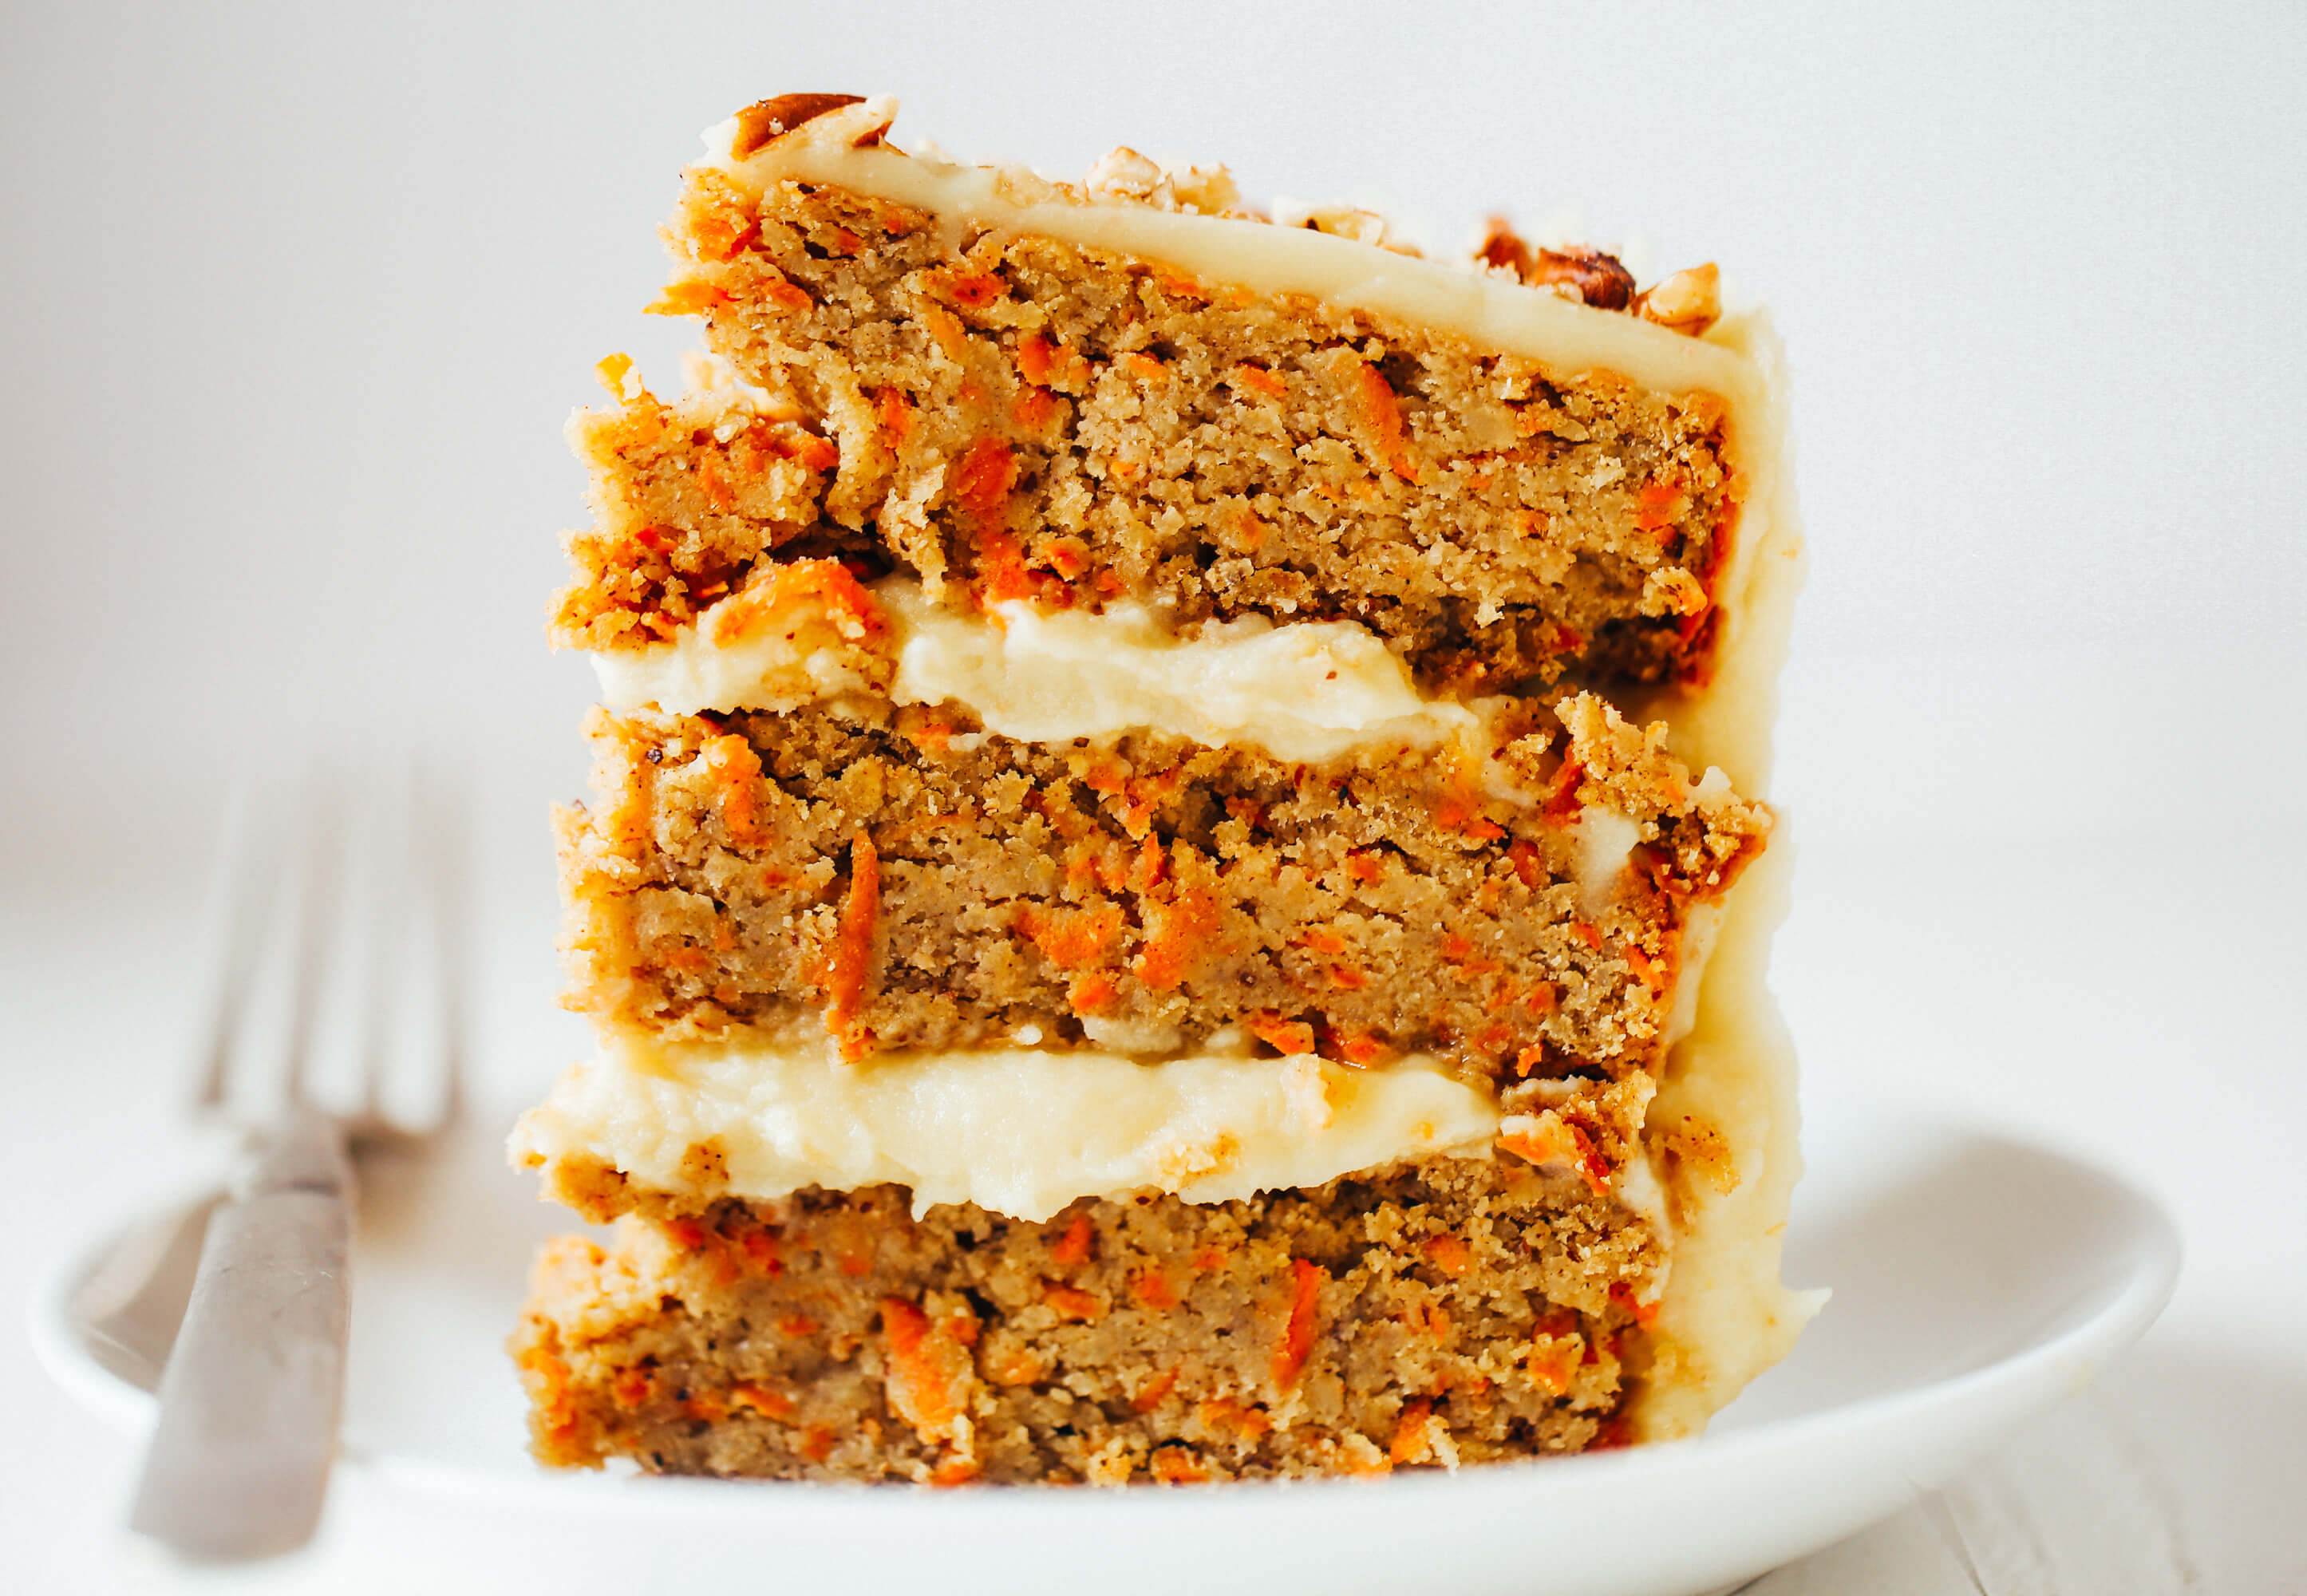 Paleo carrot cake made with sweet potatoes. Topped with creamy lemon frosting made from white sweet potatoes. A healthy carrot cake recipe that is gluten free and dairy free. Moist and flavorful carrot cake perfect for spring! #cake #baking #paleo #recipes